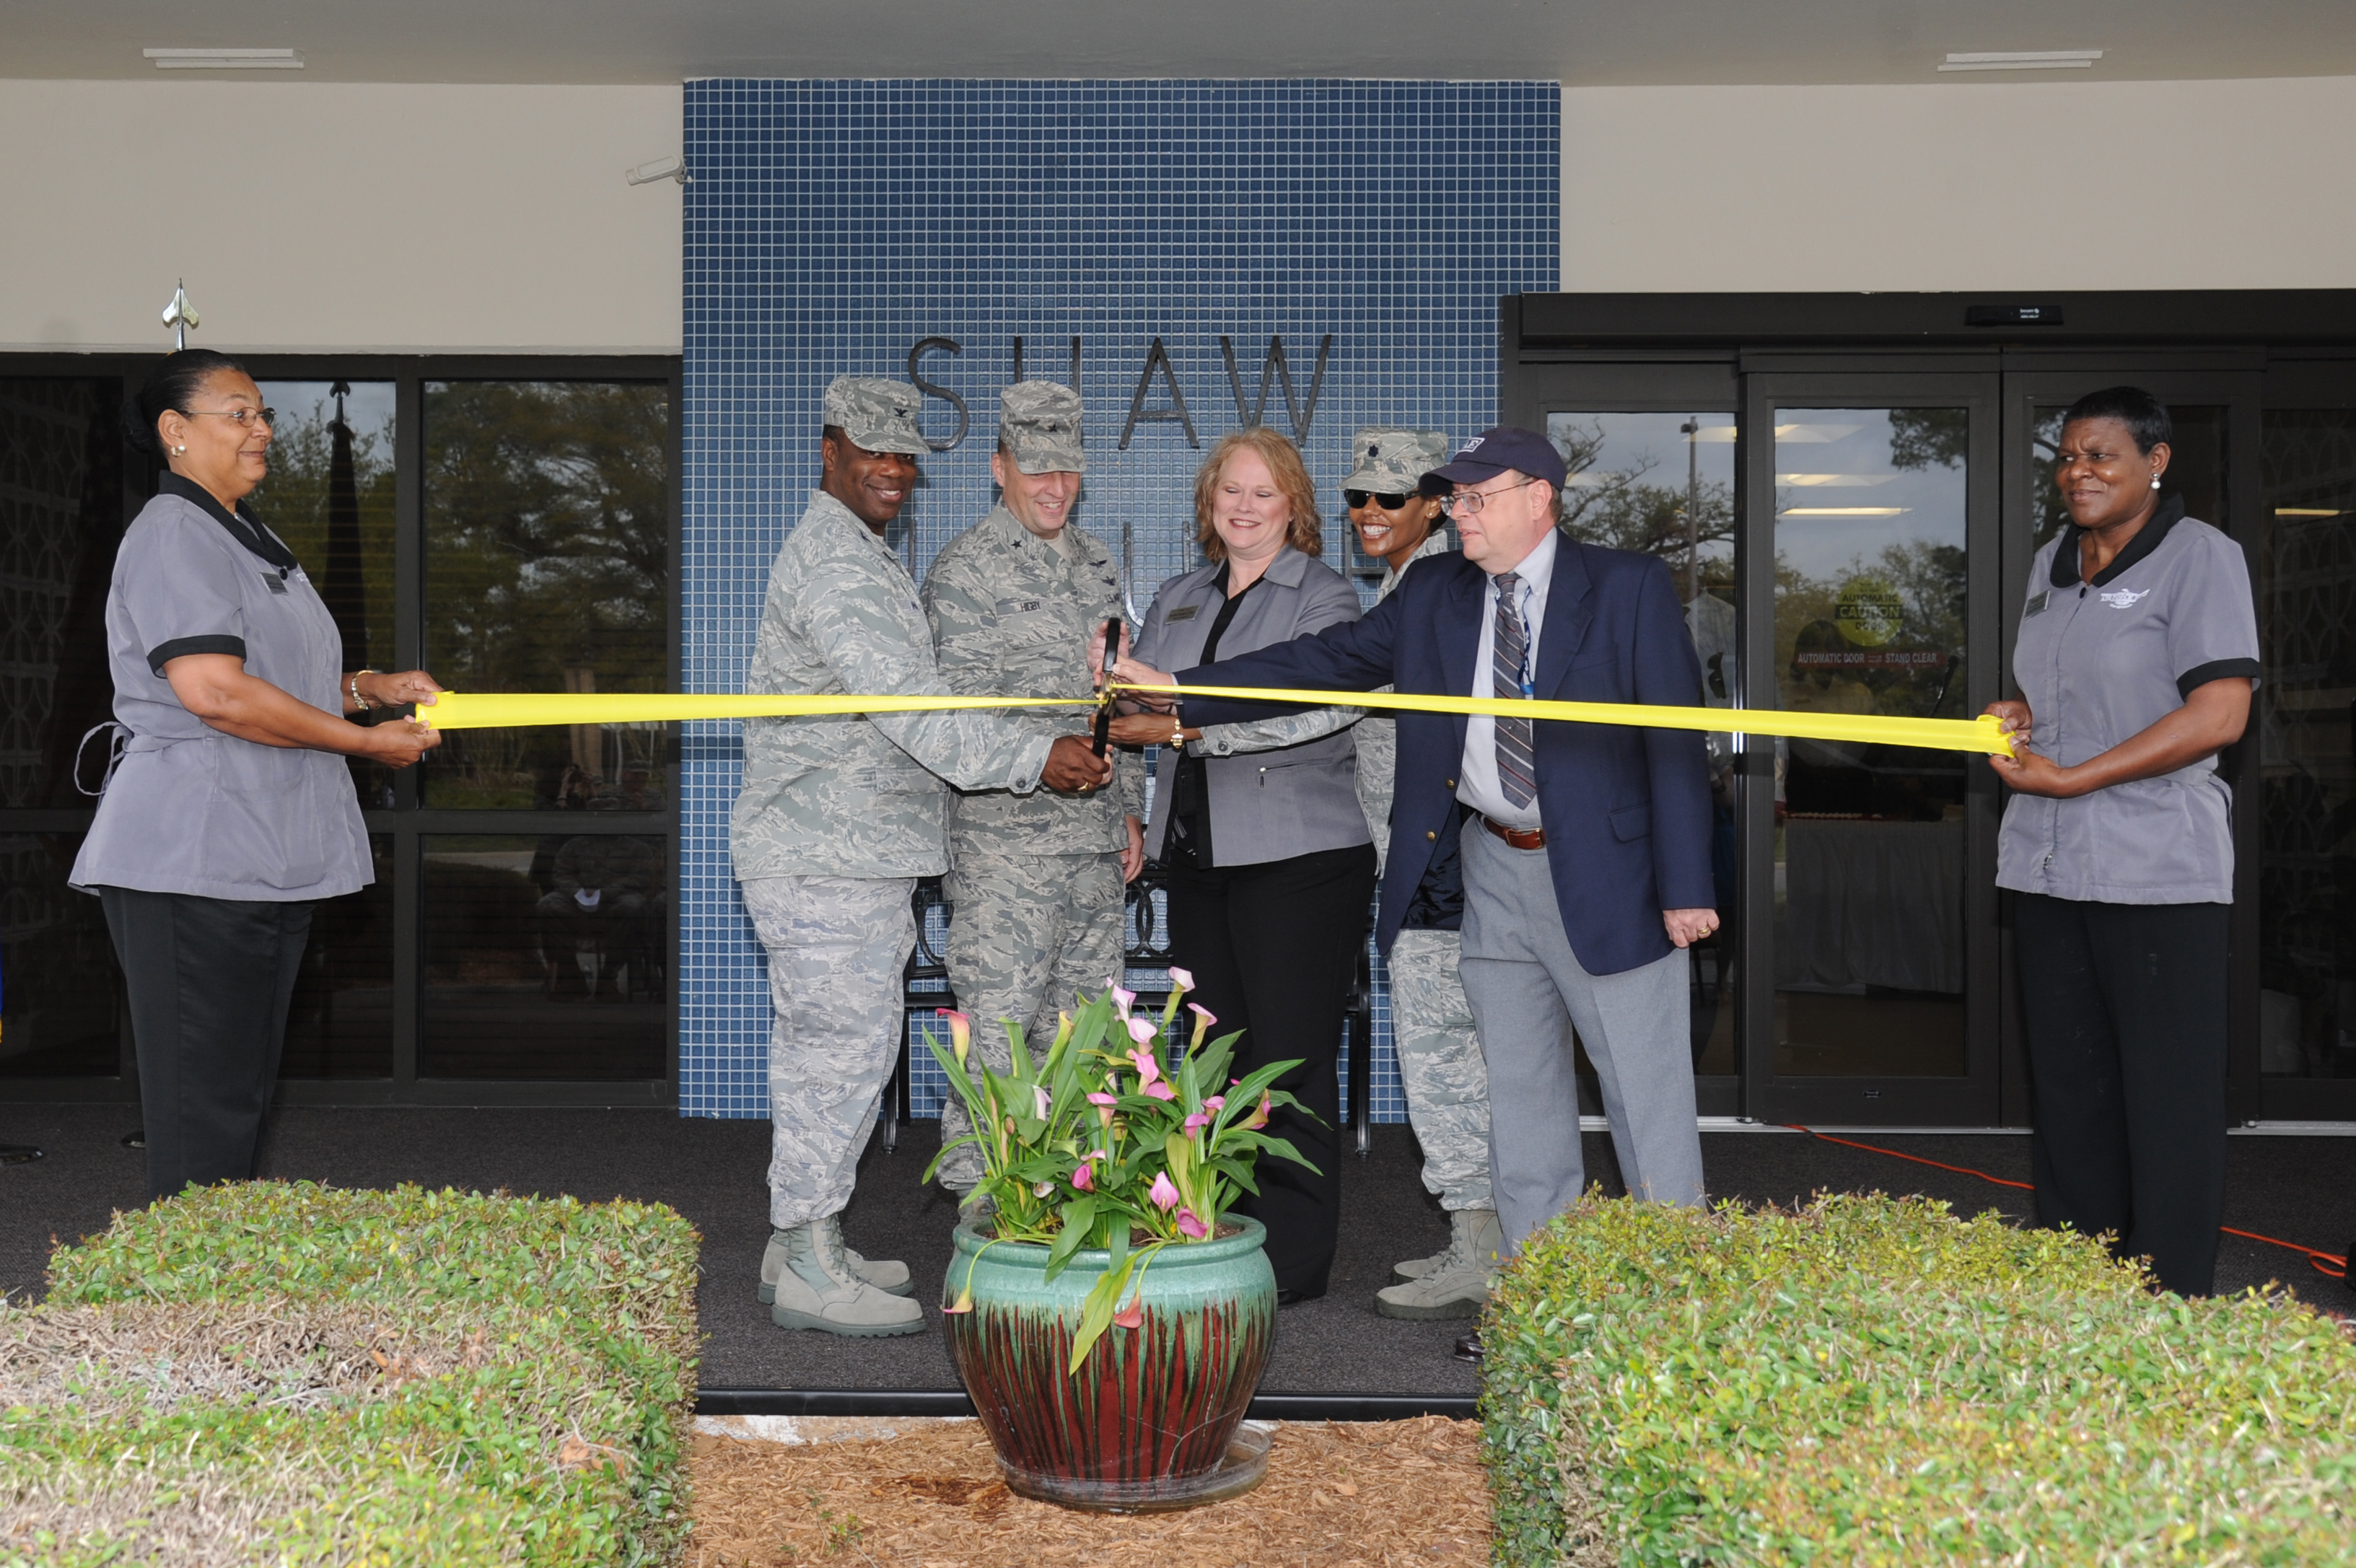 shaw house ribbon cutting ceremony > keesler air force base shaw house ribbon cutting ceremony